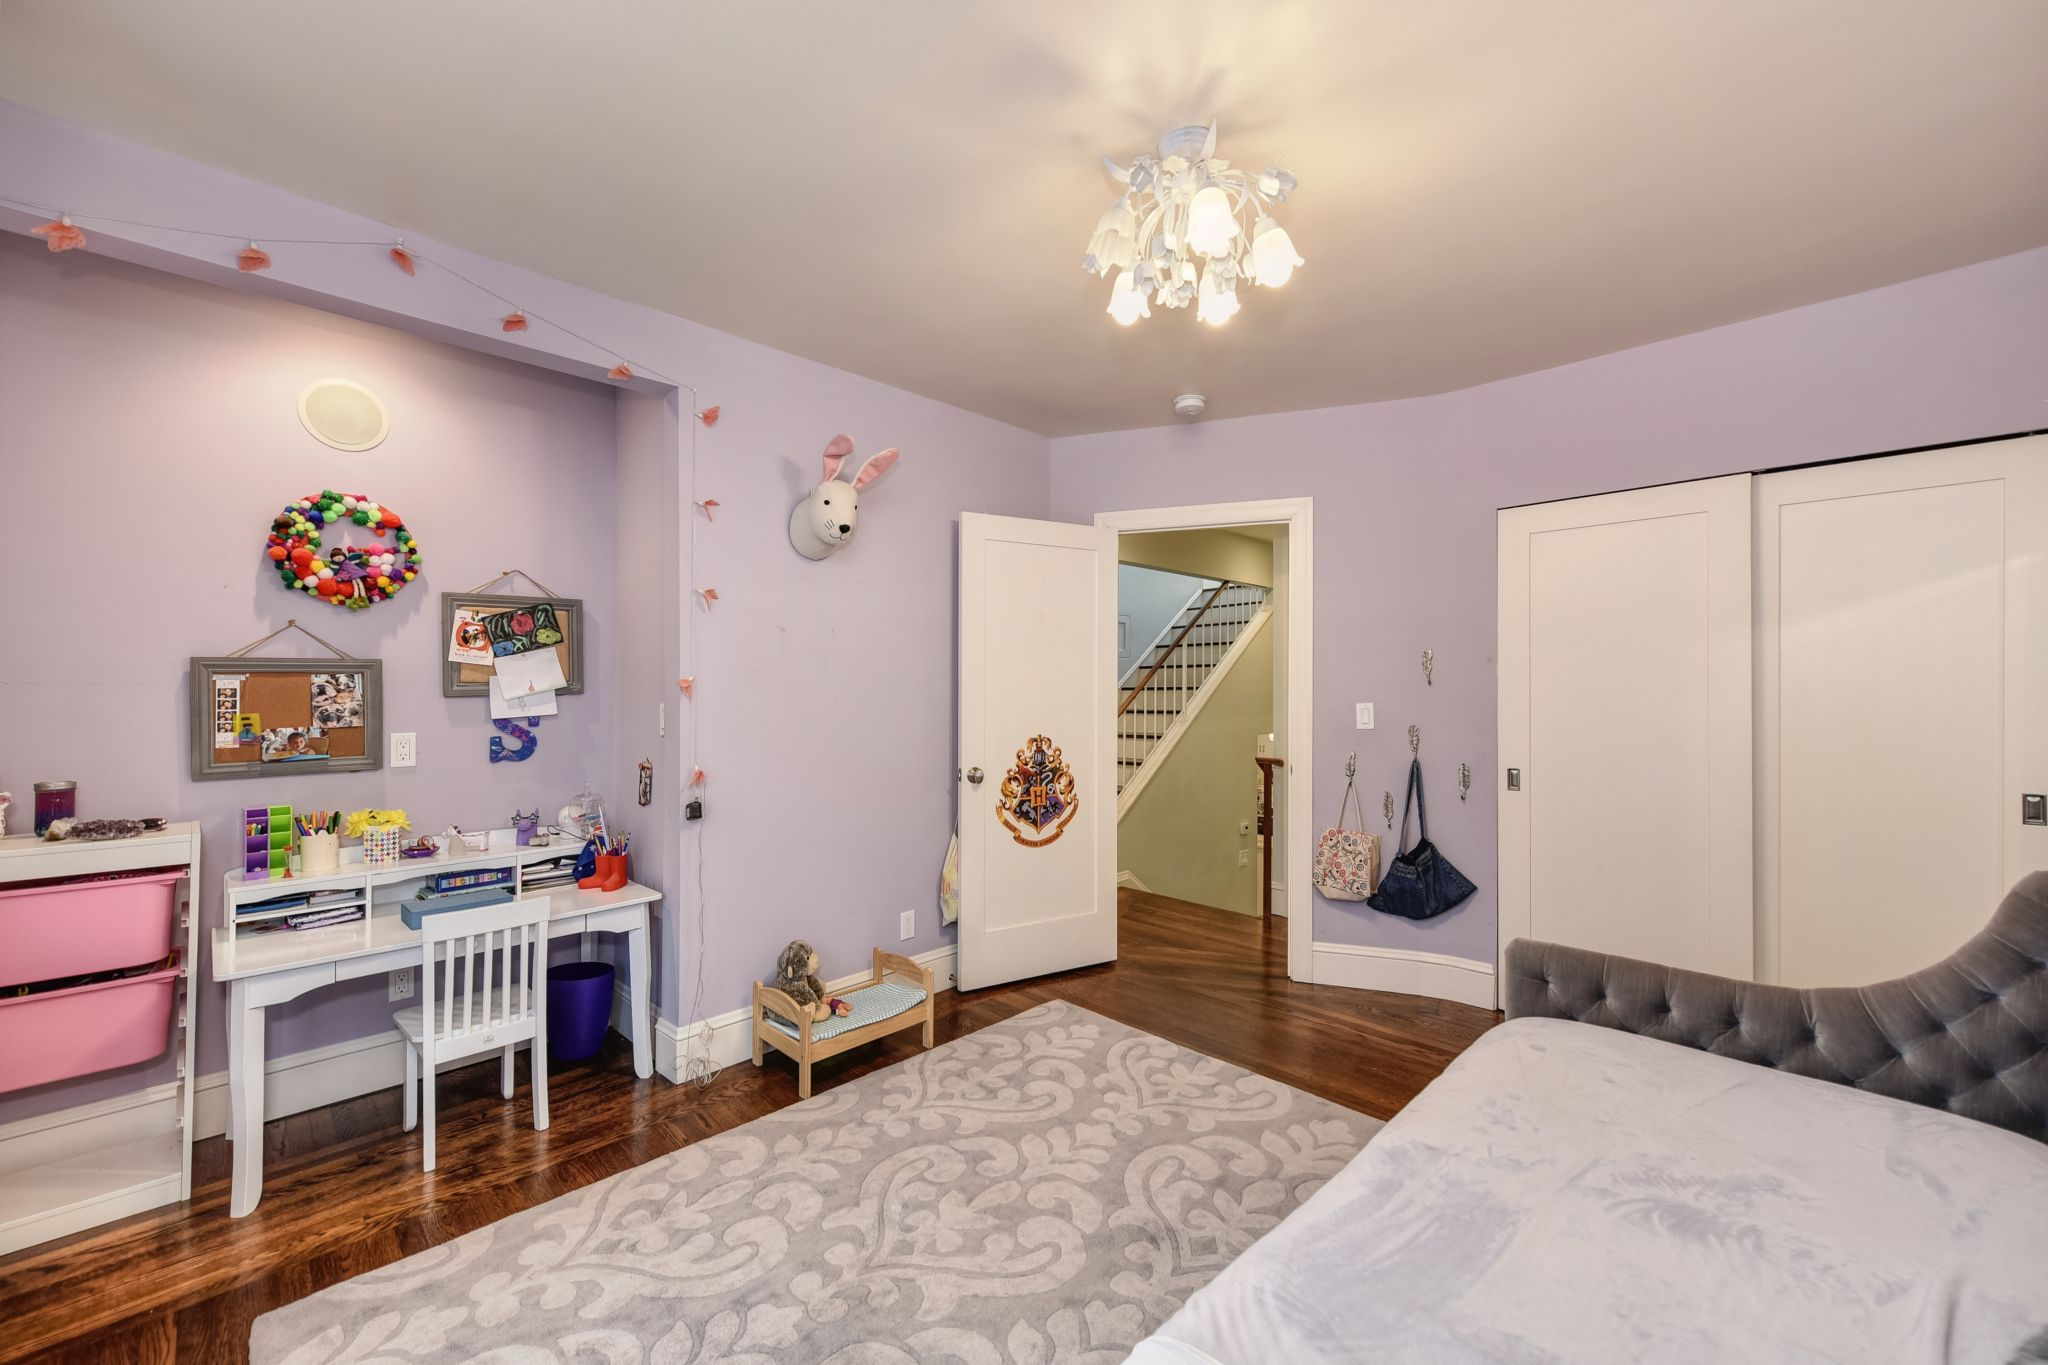 The two additional bedrooms overlook the garden and feature large closets with organizers.